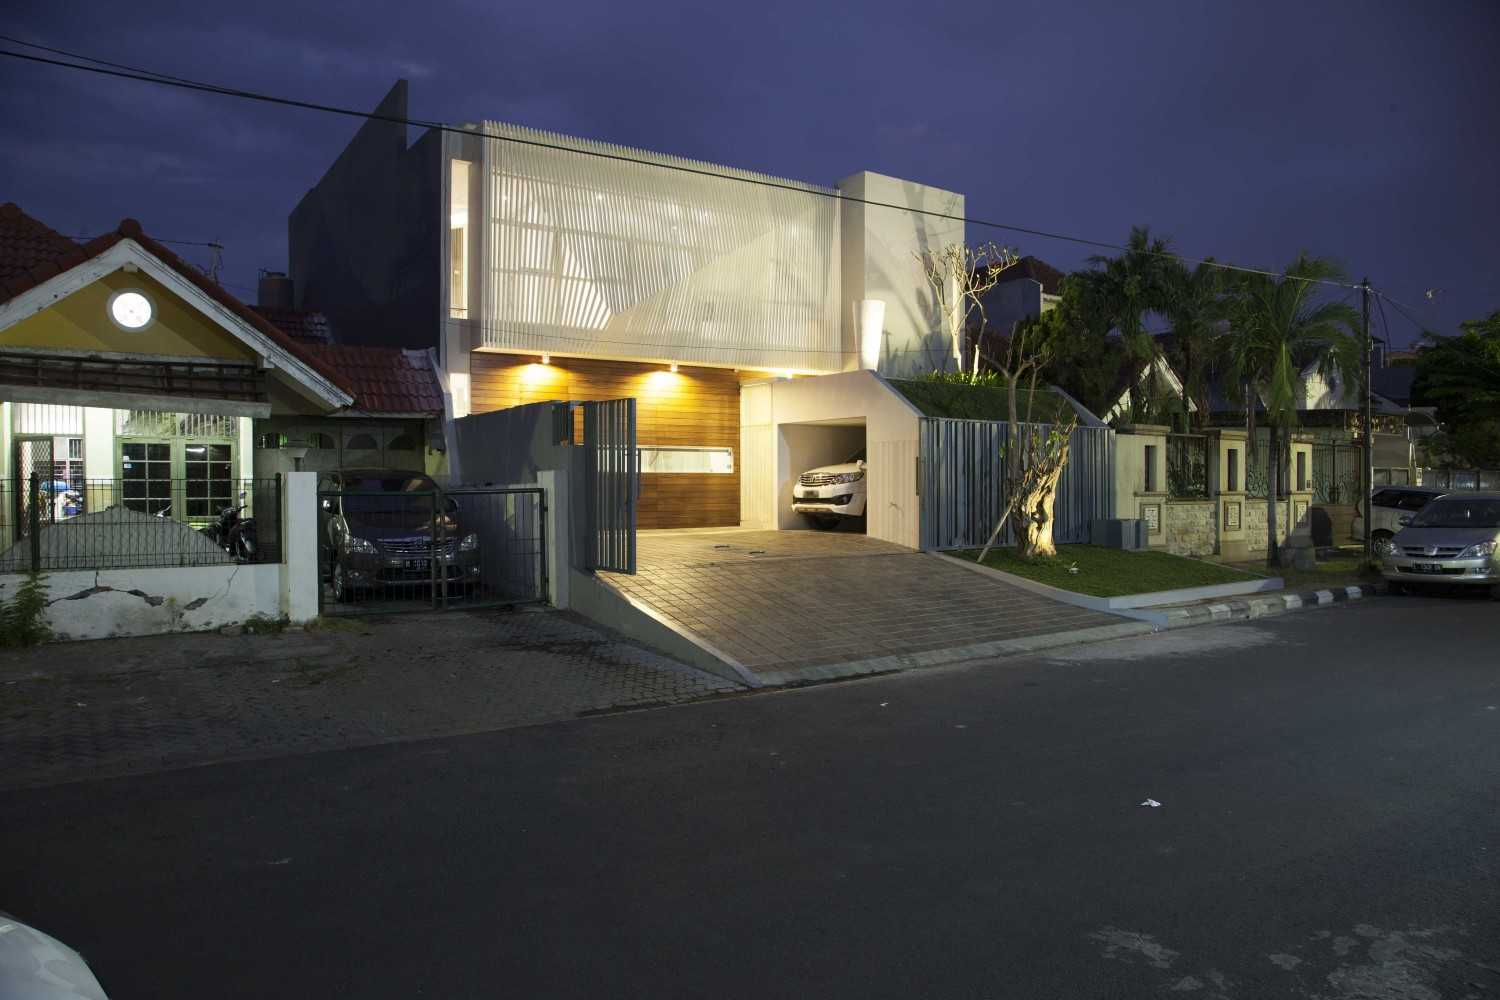 Das Quadrat Sutorejo House Surabaya, East Java, Indonesia Surabaya, East Java, Indonesia Street View At Night Modern 9379